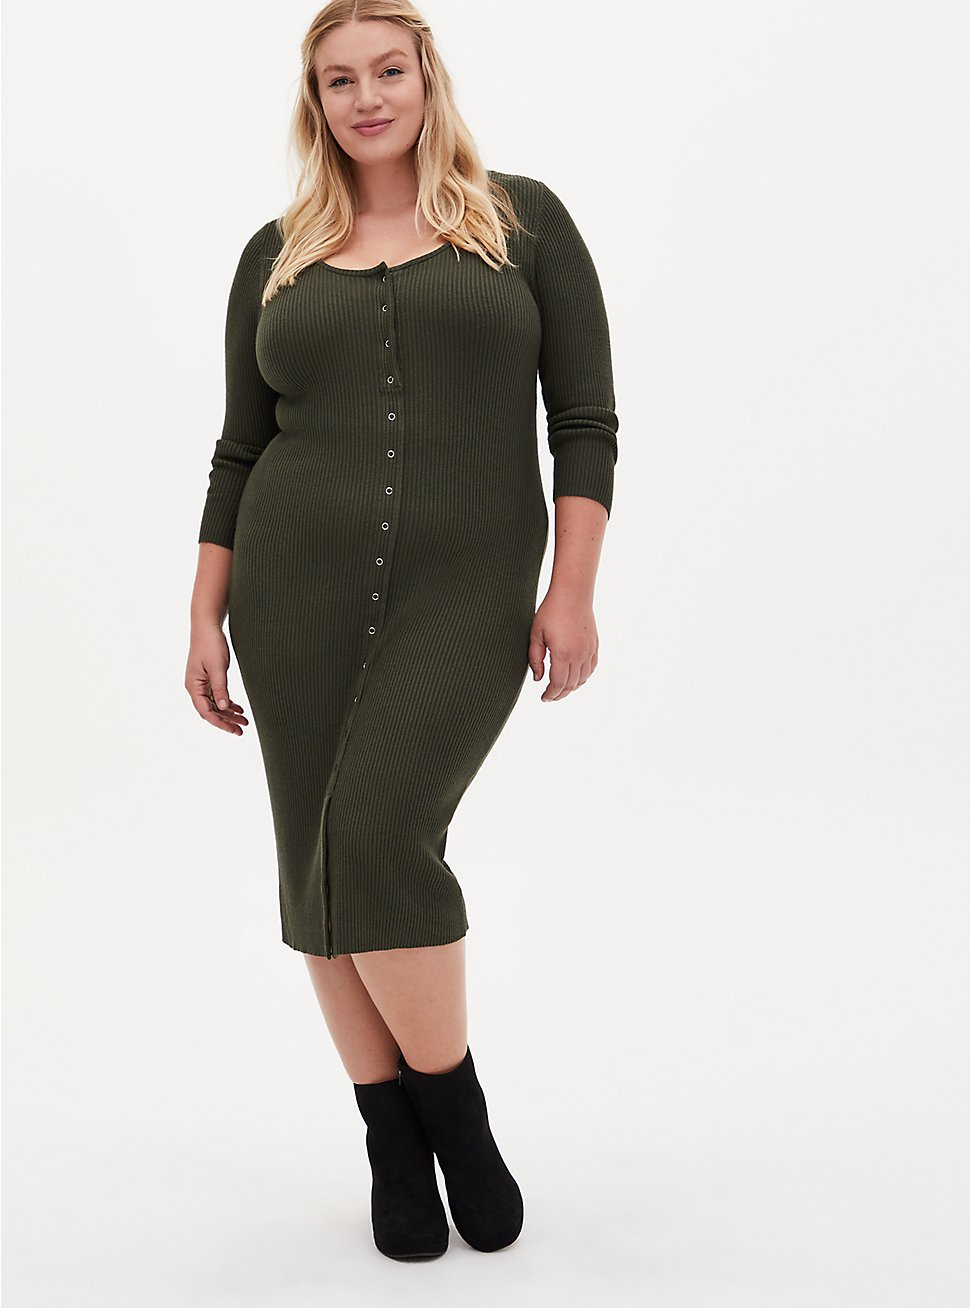 Olive Green Rib Button Front Bodycon Midi Dress, DEEP DEPTHS, hi-res